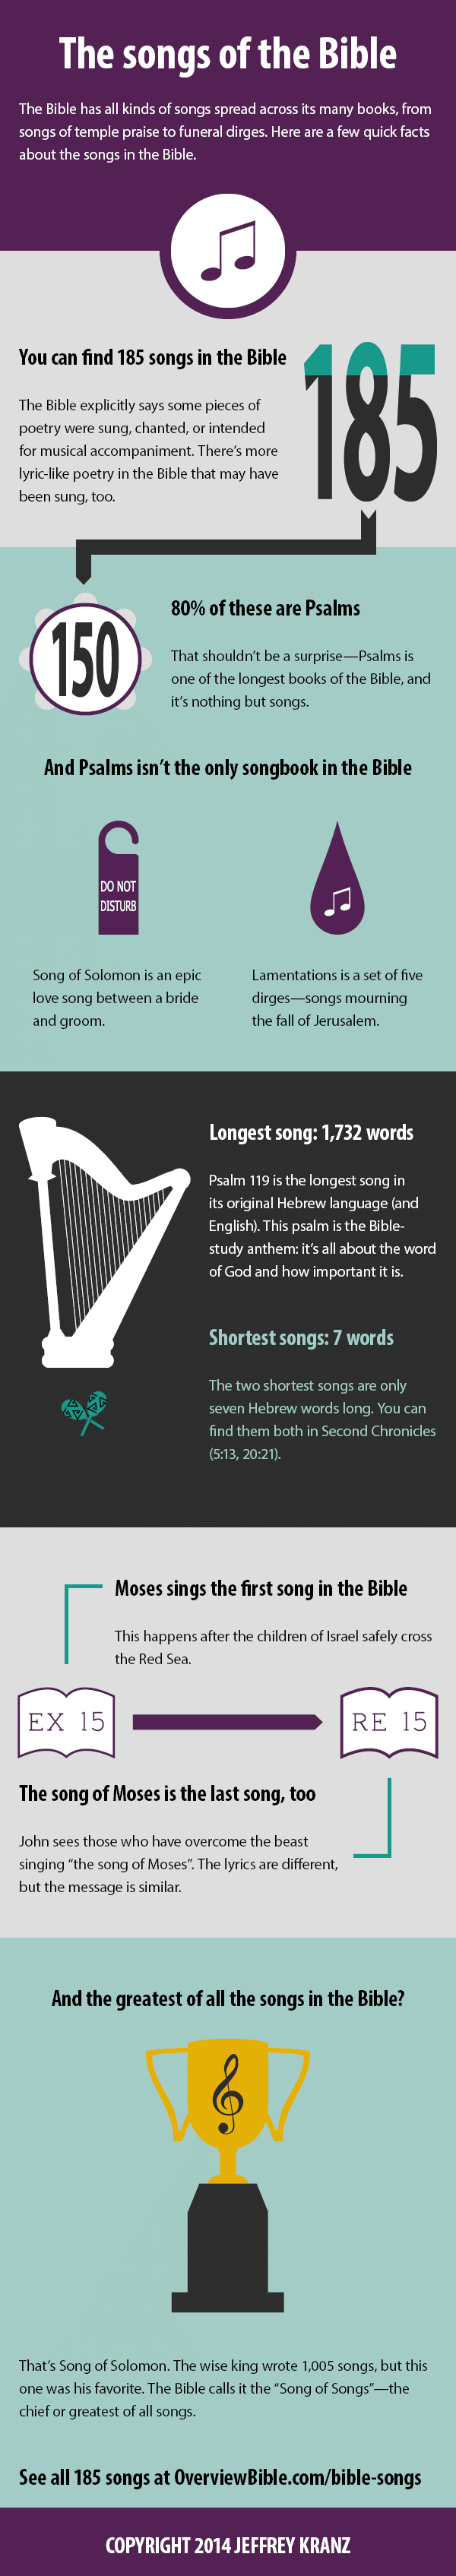 songs-in-the-bible.infographic